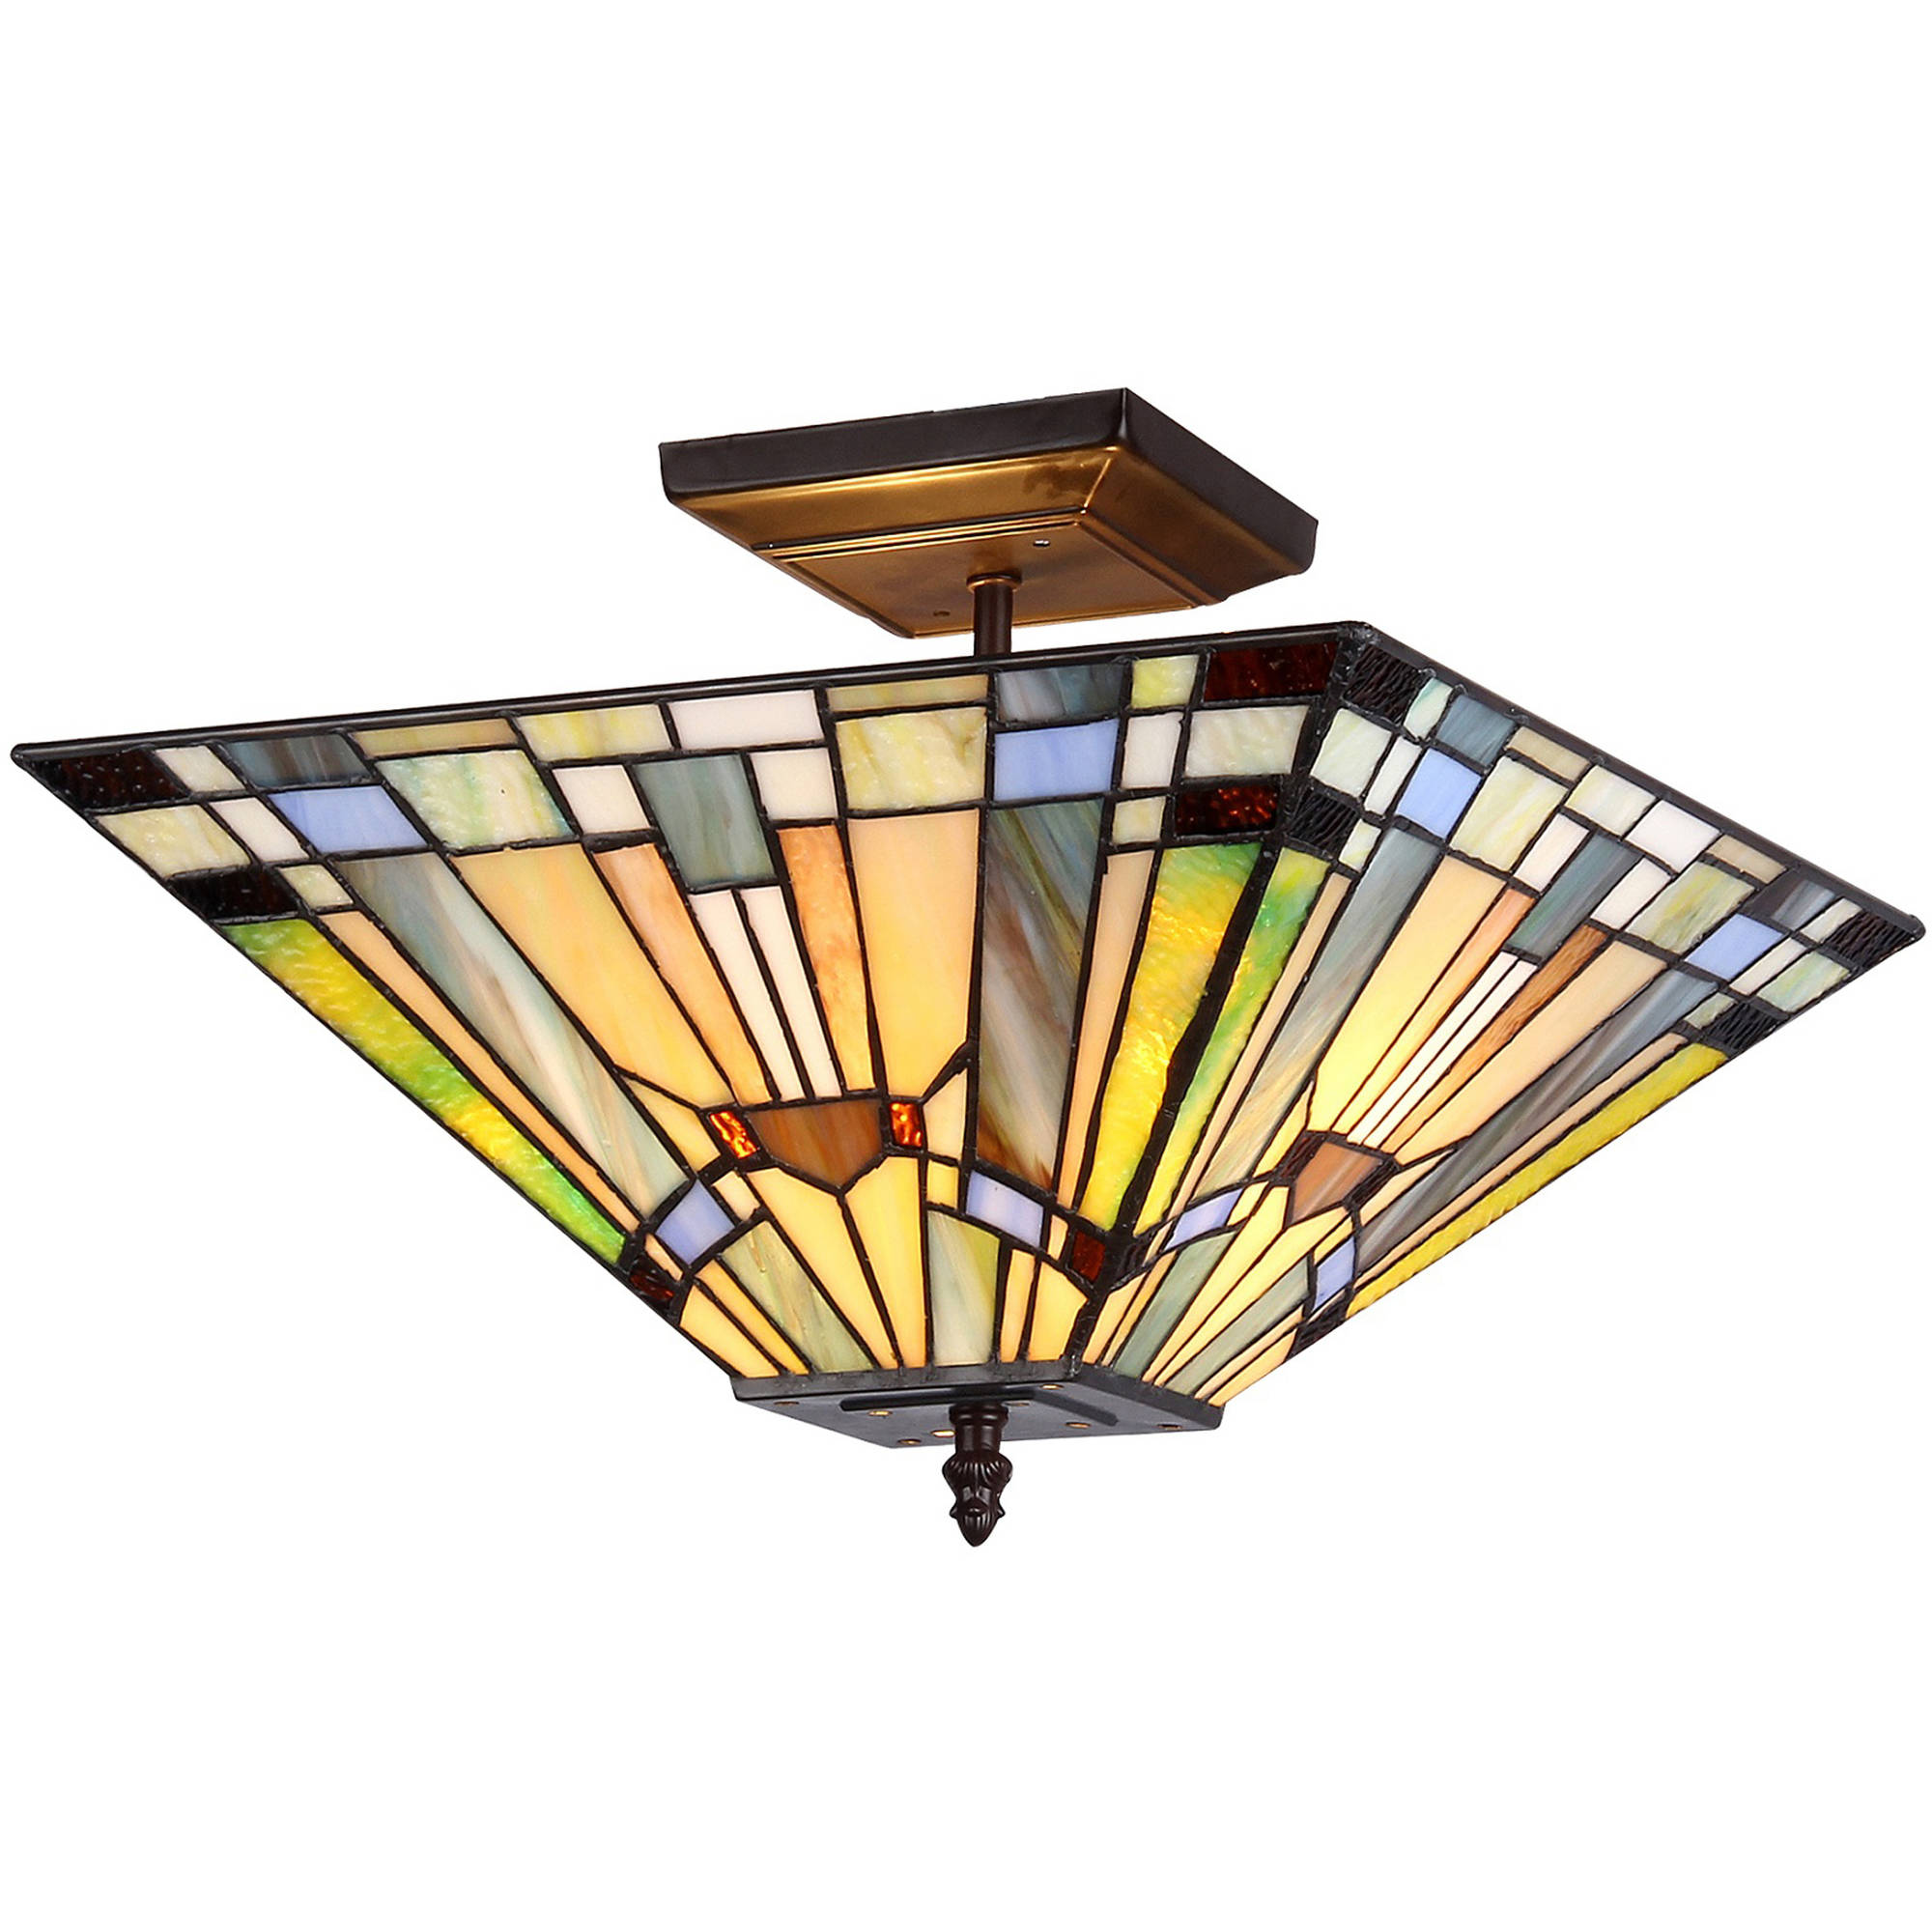 "Chloe Lighting Kinsey Tiffany-Style 2-Light Mission Semi-Flush Ceiling Fixture with 14"" Shade by Chloe Lighting"